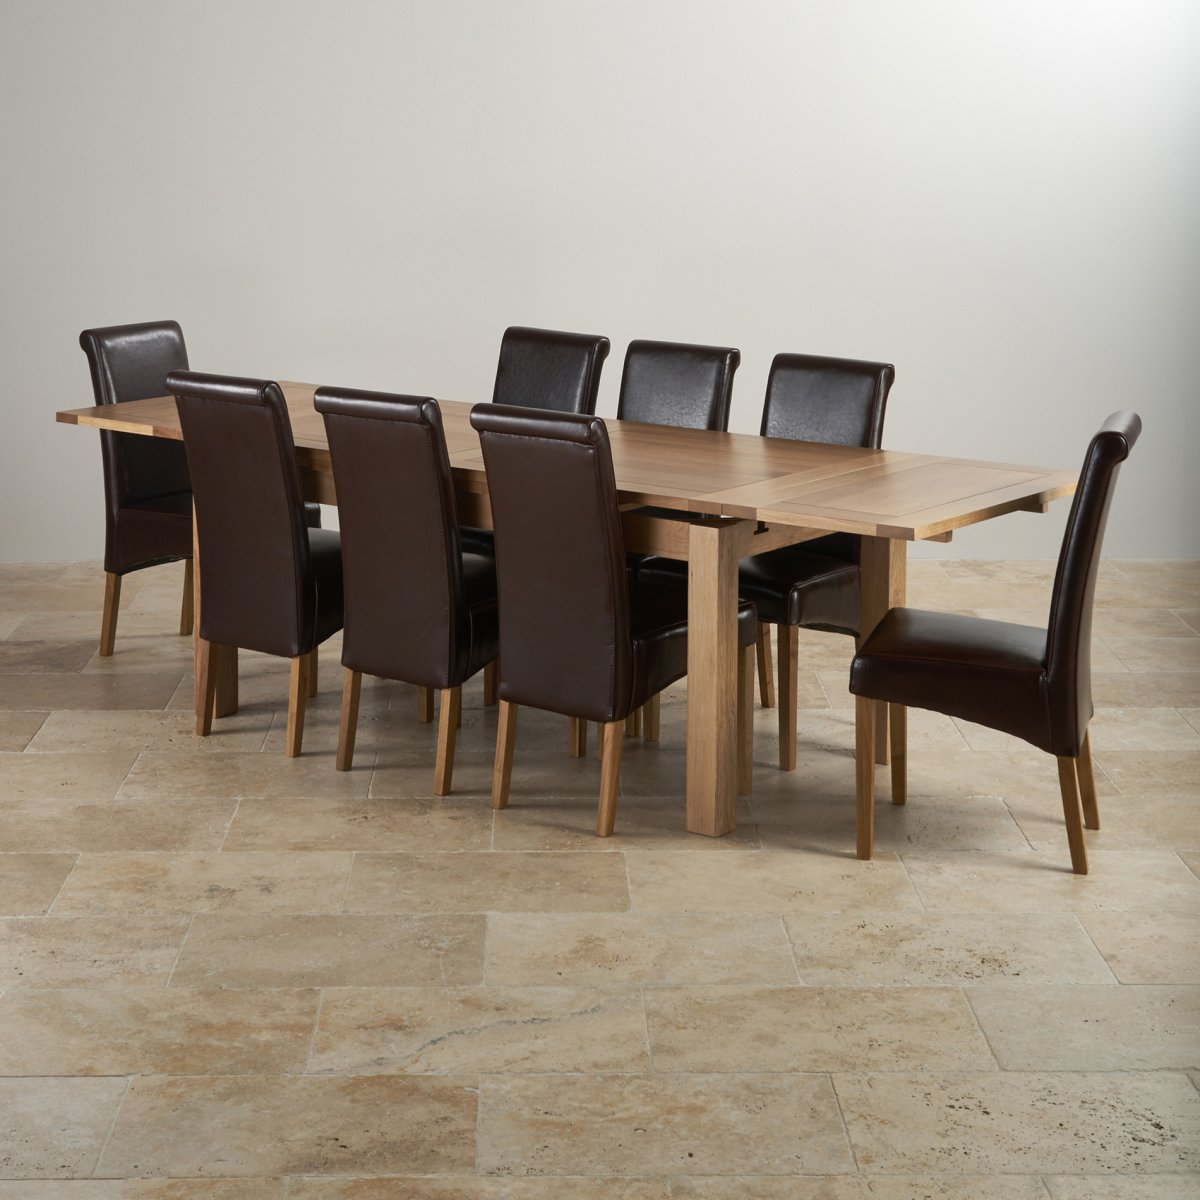 Dining Room Table And 8 Chairs Of Dorset Oak Dining Set 6ft Table With 8 Chairs